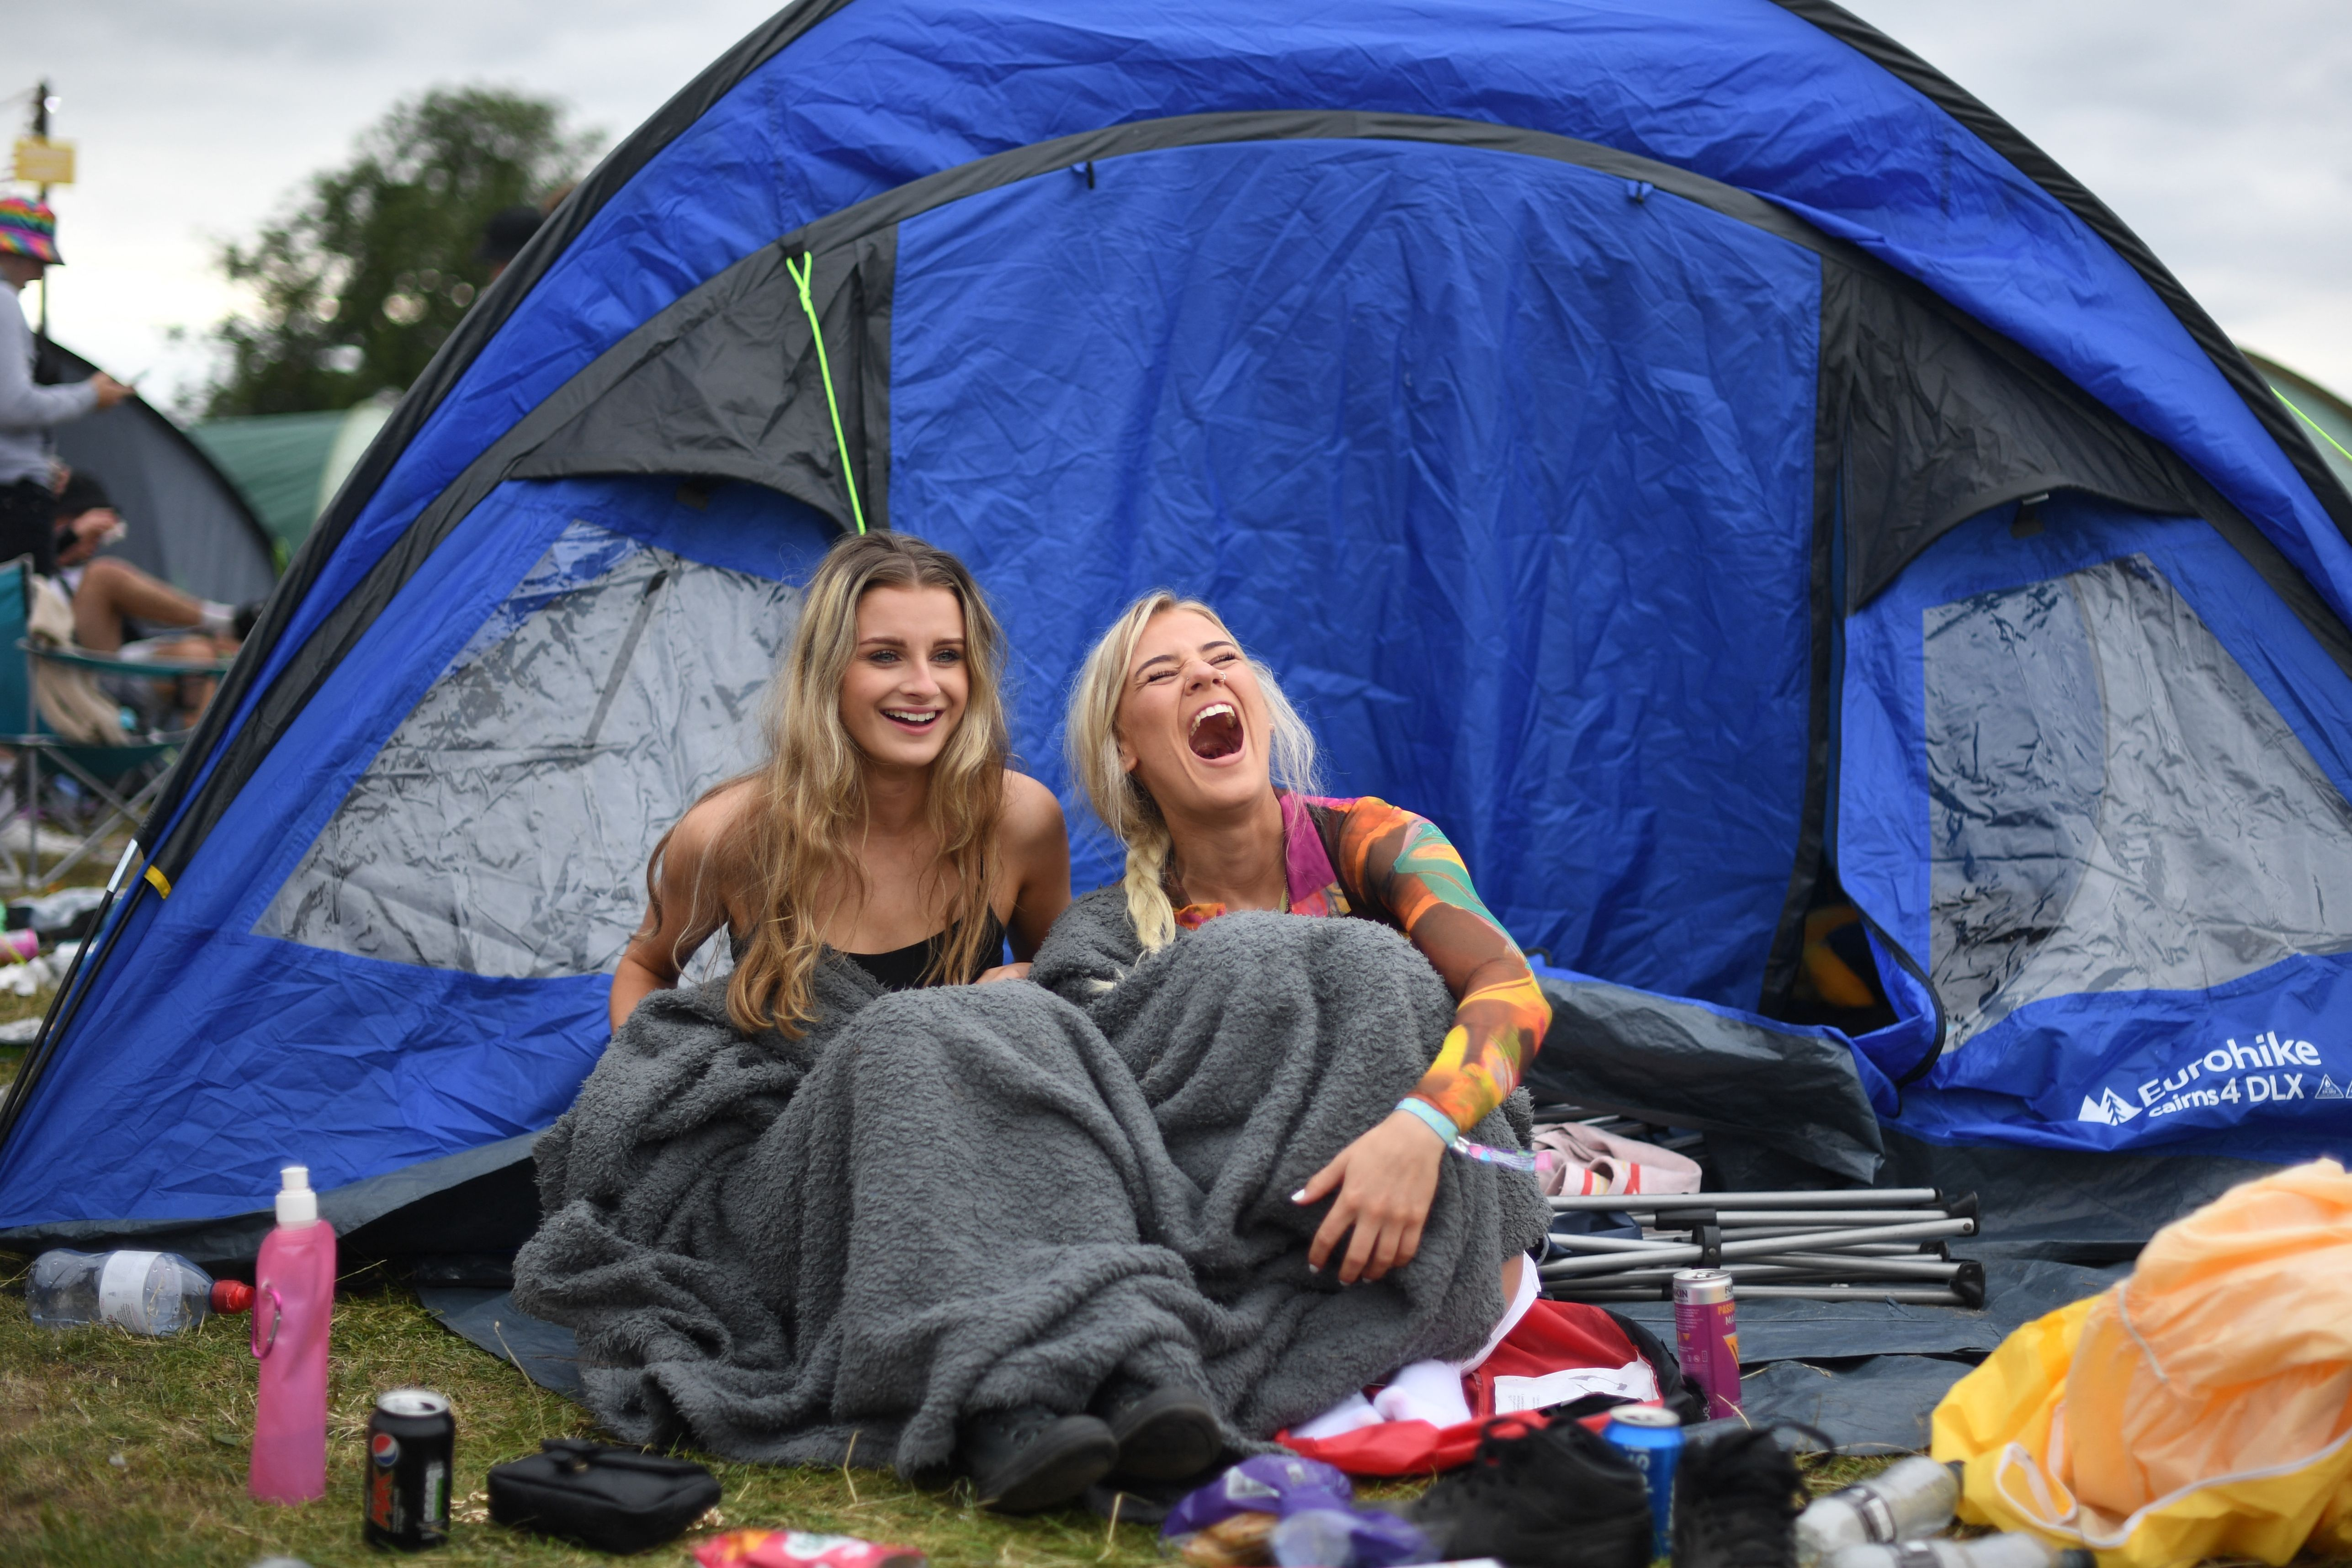 """<p>Festival-goers set up their tent as they attend Reading Festival in Reading, west of London, on August 27, 2021. - As coronavirus covid-19 infection levels rise across the country, vaccines will be offered to revellers throughout the weekend. The organiser of Reading and Leeds Festivals has said such events are arguably """"safer places to be"""" because attendees have been tested for covid-19. The festivals are returning this year with headliners including Stormzy, after being cancelled last year due to the pandemic.  - RESTRICTED TO EDITORIAL USE (Photo by DANIEL LEAL-OLIVAS / AFP) / RESTRICTED TO EDITORIAL USE (Photo by DANIEL LEAL-OLIVAS/AFP via Getty Images)</p>"""